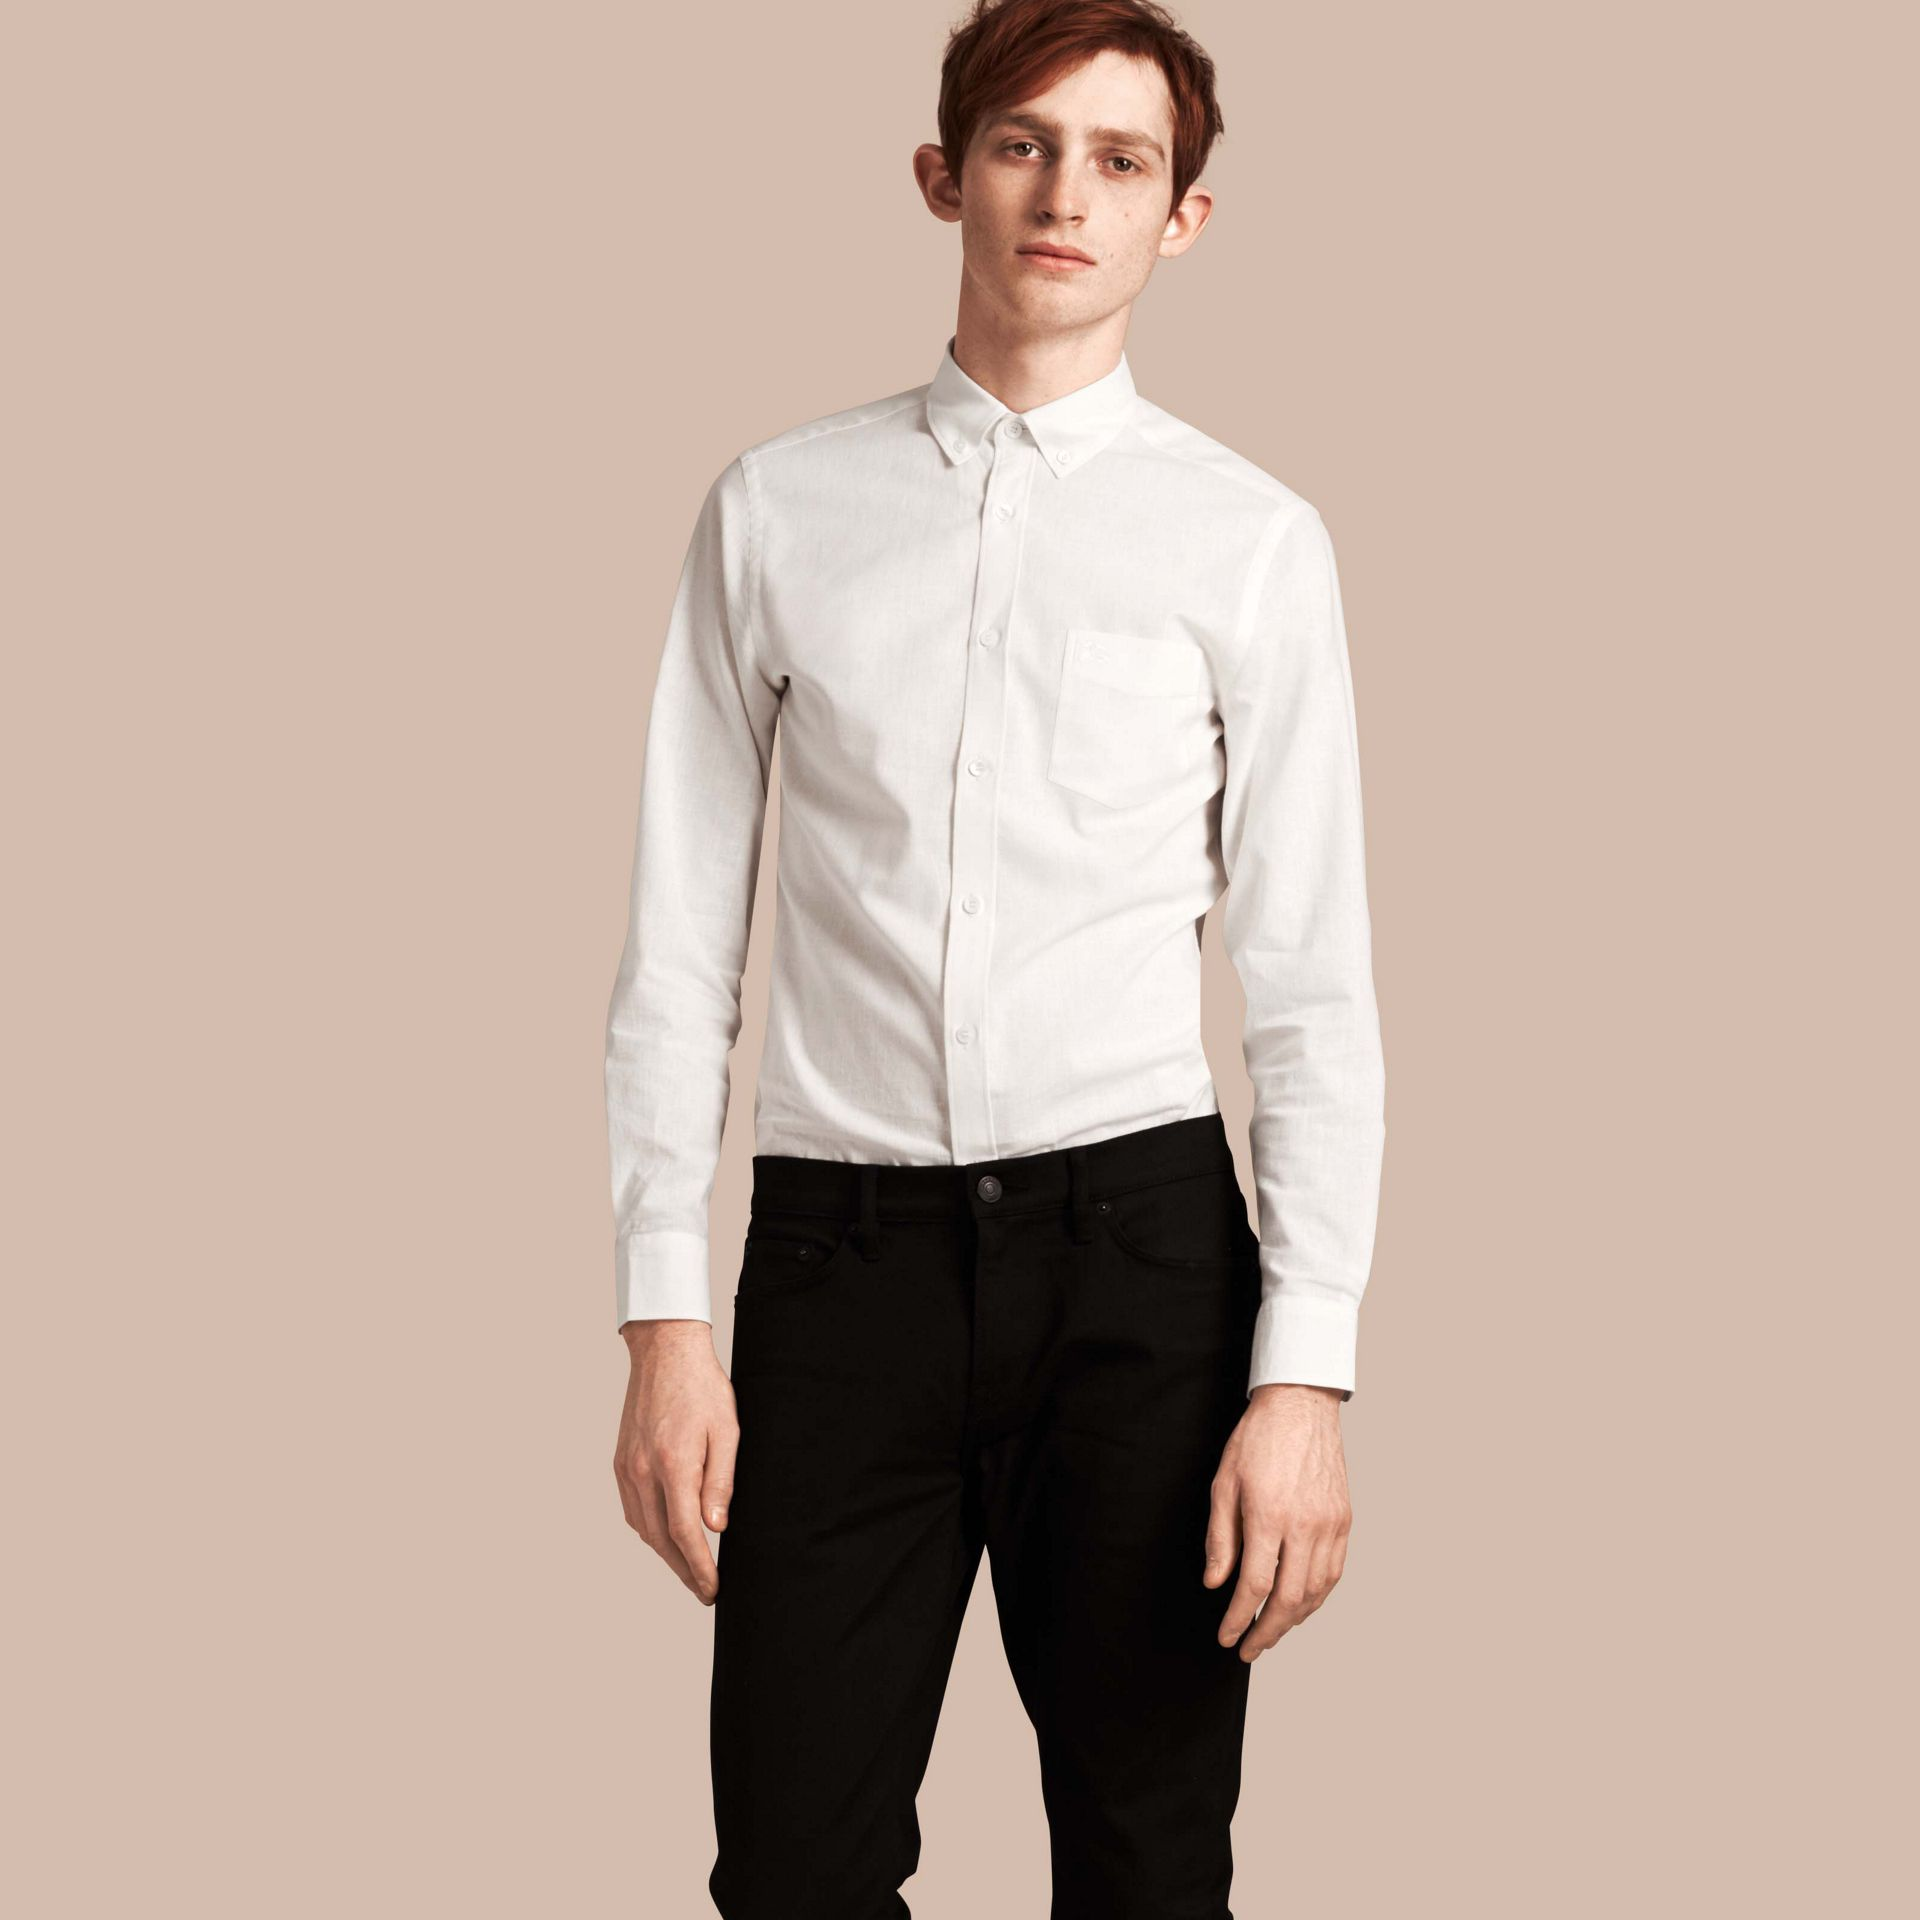 White Button-down Collar Cotton Linen Shirt White - gallery image 1